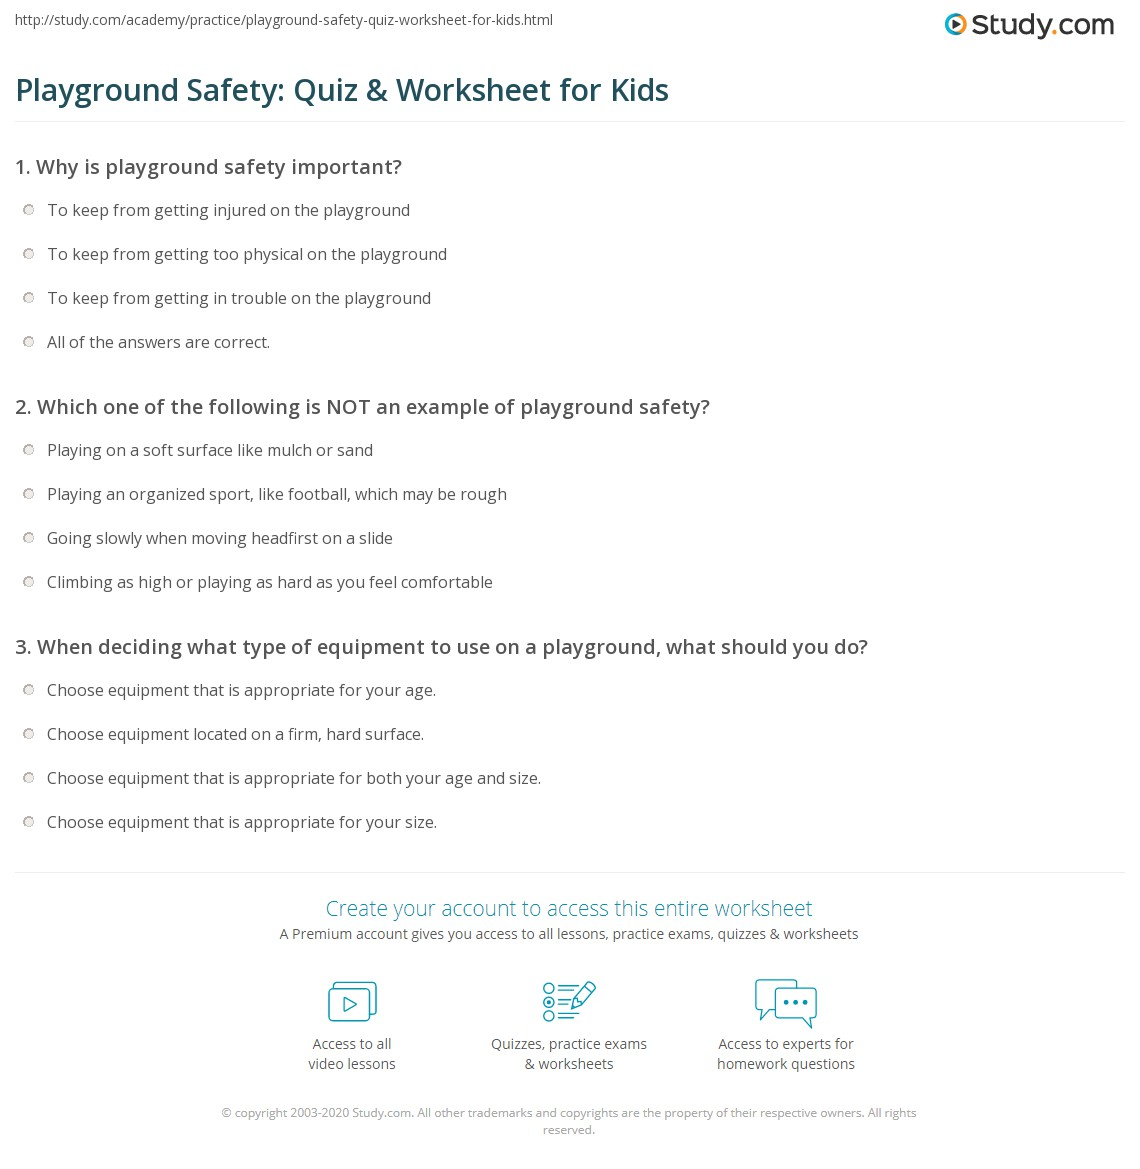 Playground Safety: Quiz & Worksheet For Kids